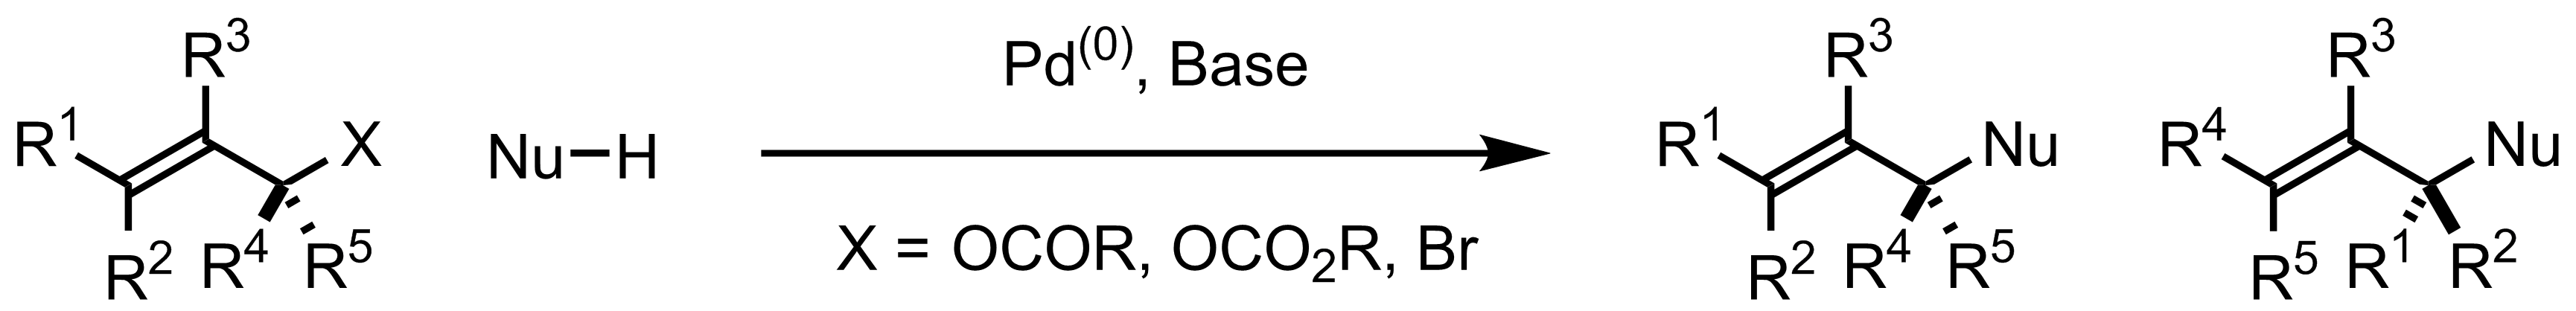 Schematic representation of the Tsuji-Trost Reaction.